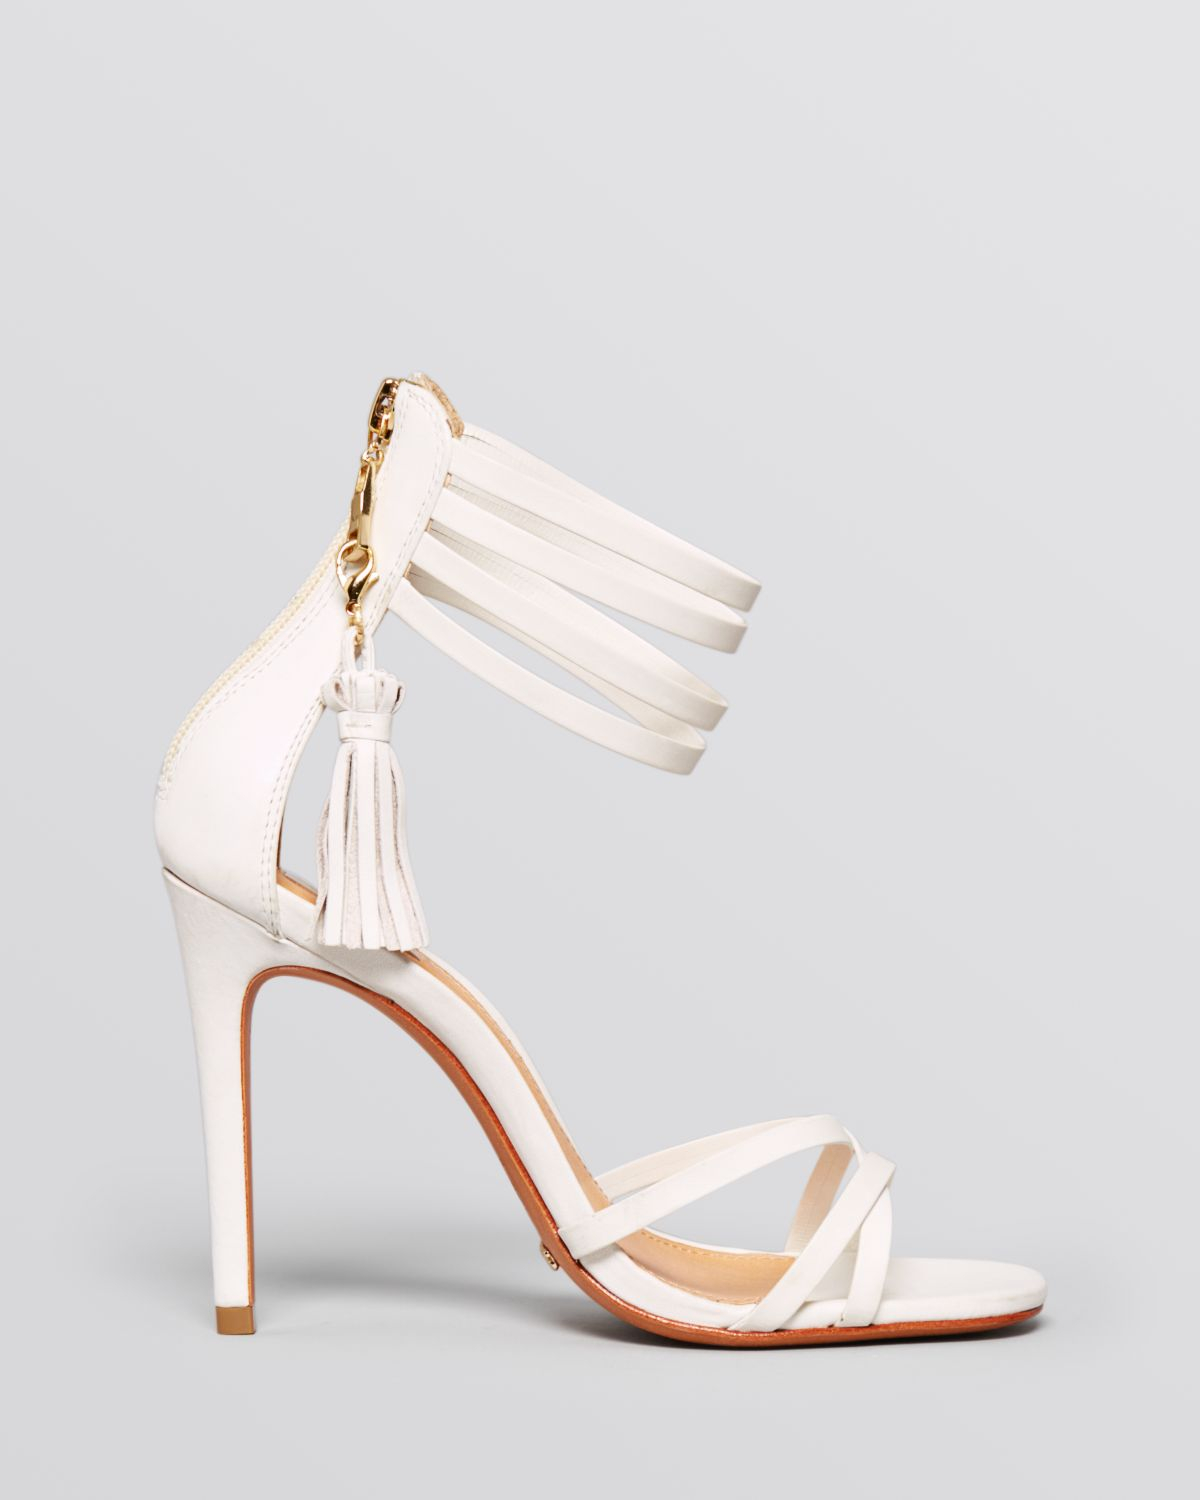 White High Heel Sandals - Is Heel